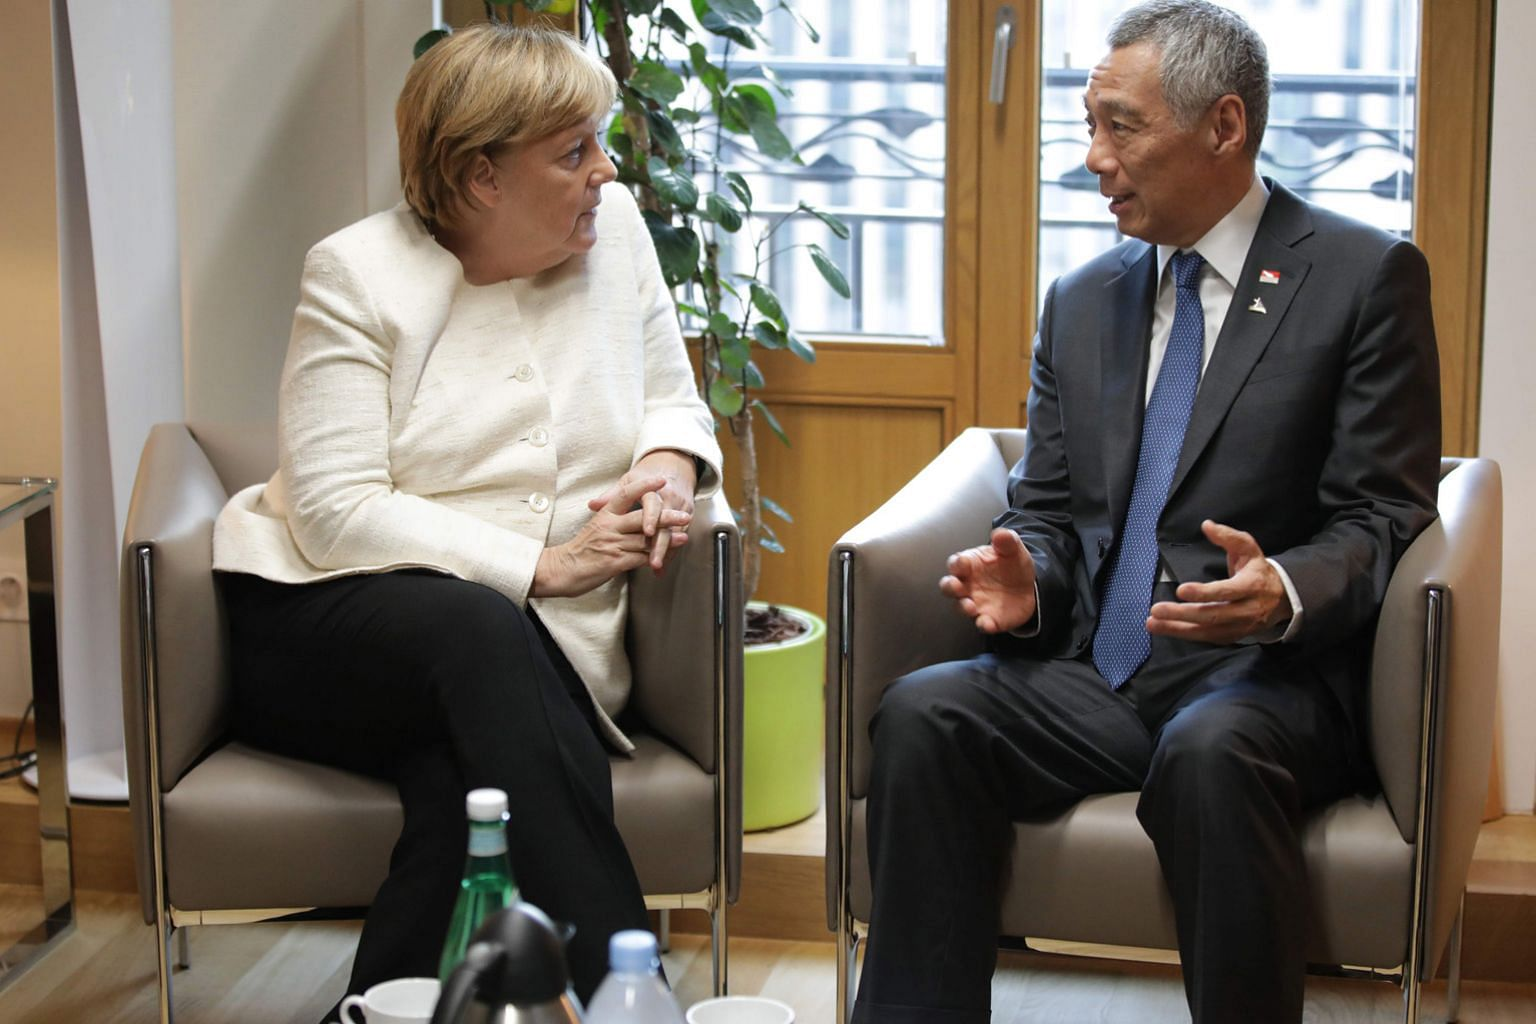 Prime Minister Lee Hsien Loong meeting German Chancellor Angela Merkel (left) and British Prime Minister Theresa May in Brussels on Thursday, where they underscored their commitment to the multilateral system.